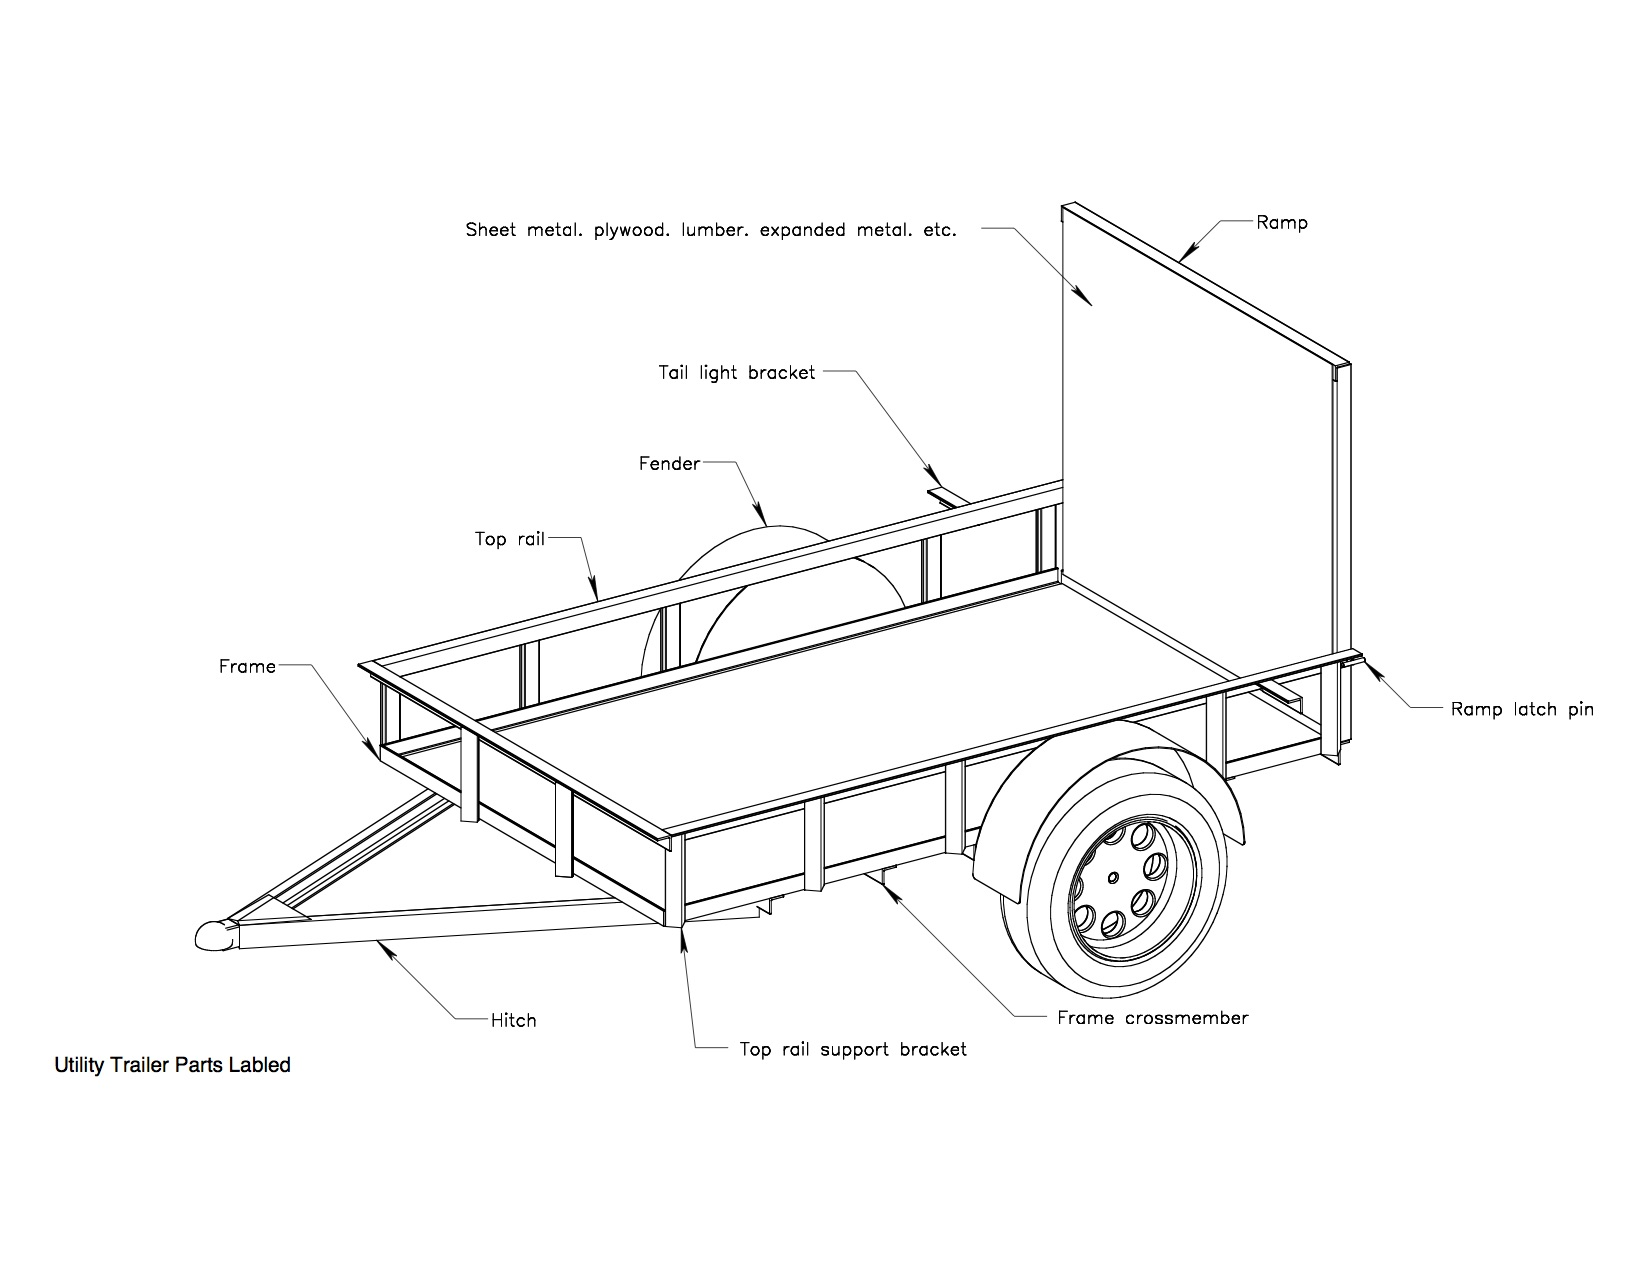 Fantastic The XPCamper Replaces Your Pickup Truck Bed With A Functional Utility Camper  Be Mounted To Truck Roofs, Camper Shells Or On Top Of Bed Racks Several Accessory Mounts Are Also Available The Allaluminum VMI Xtender OX Trailer